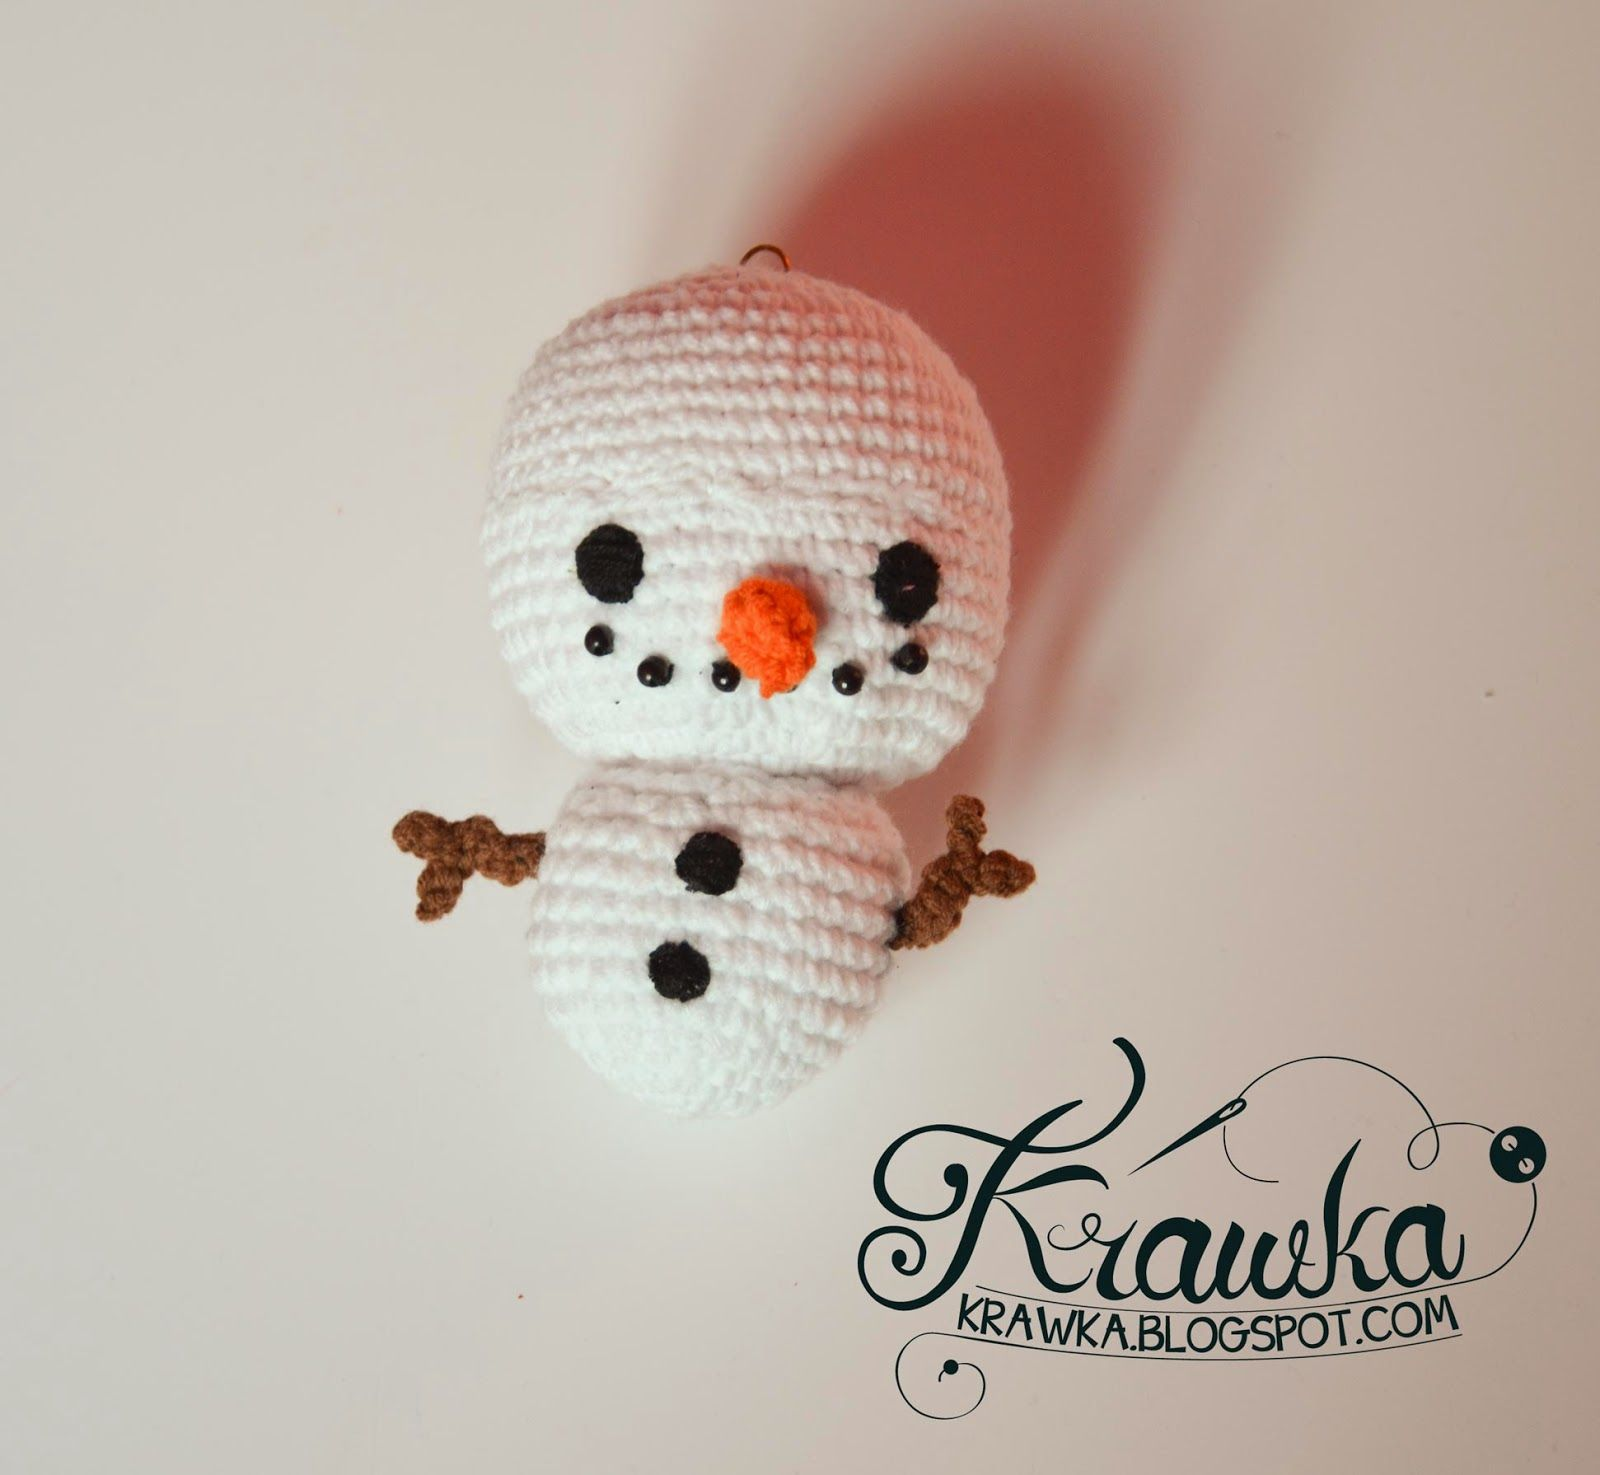 Krawka: Snowman Christmas Tree ornament crochet free pattern ...